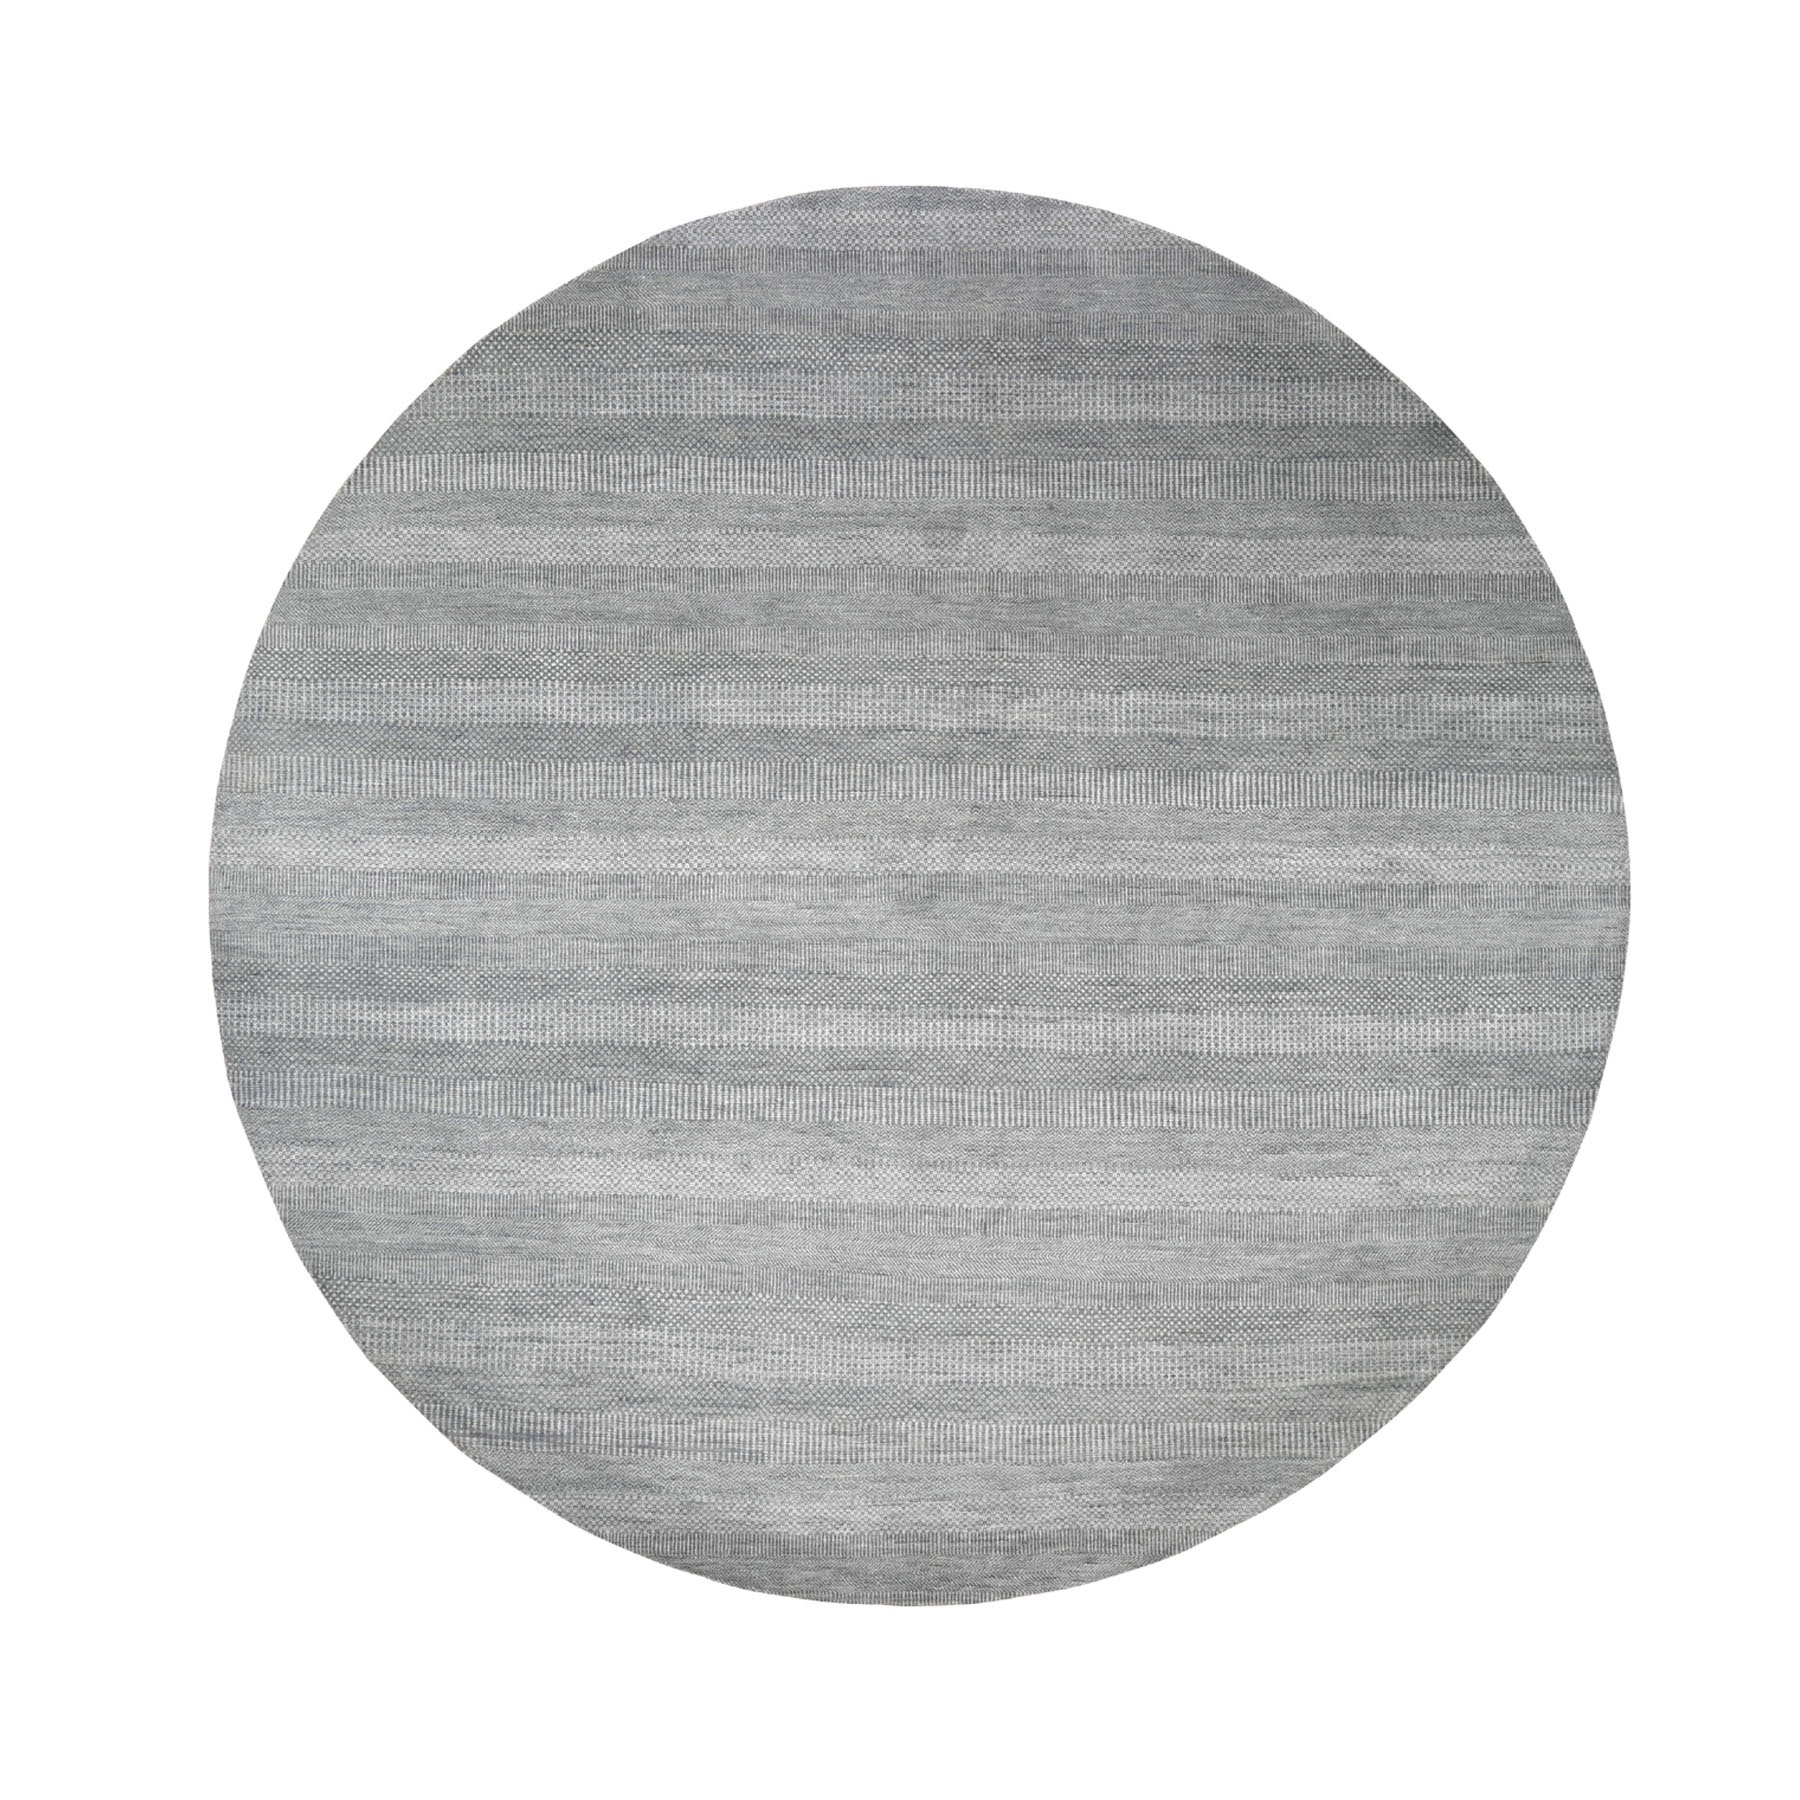 10'x10' Gray Round Wool and Silk Grass Design Hand Woven Oriental Rug